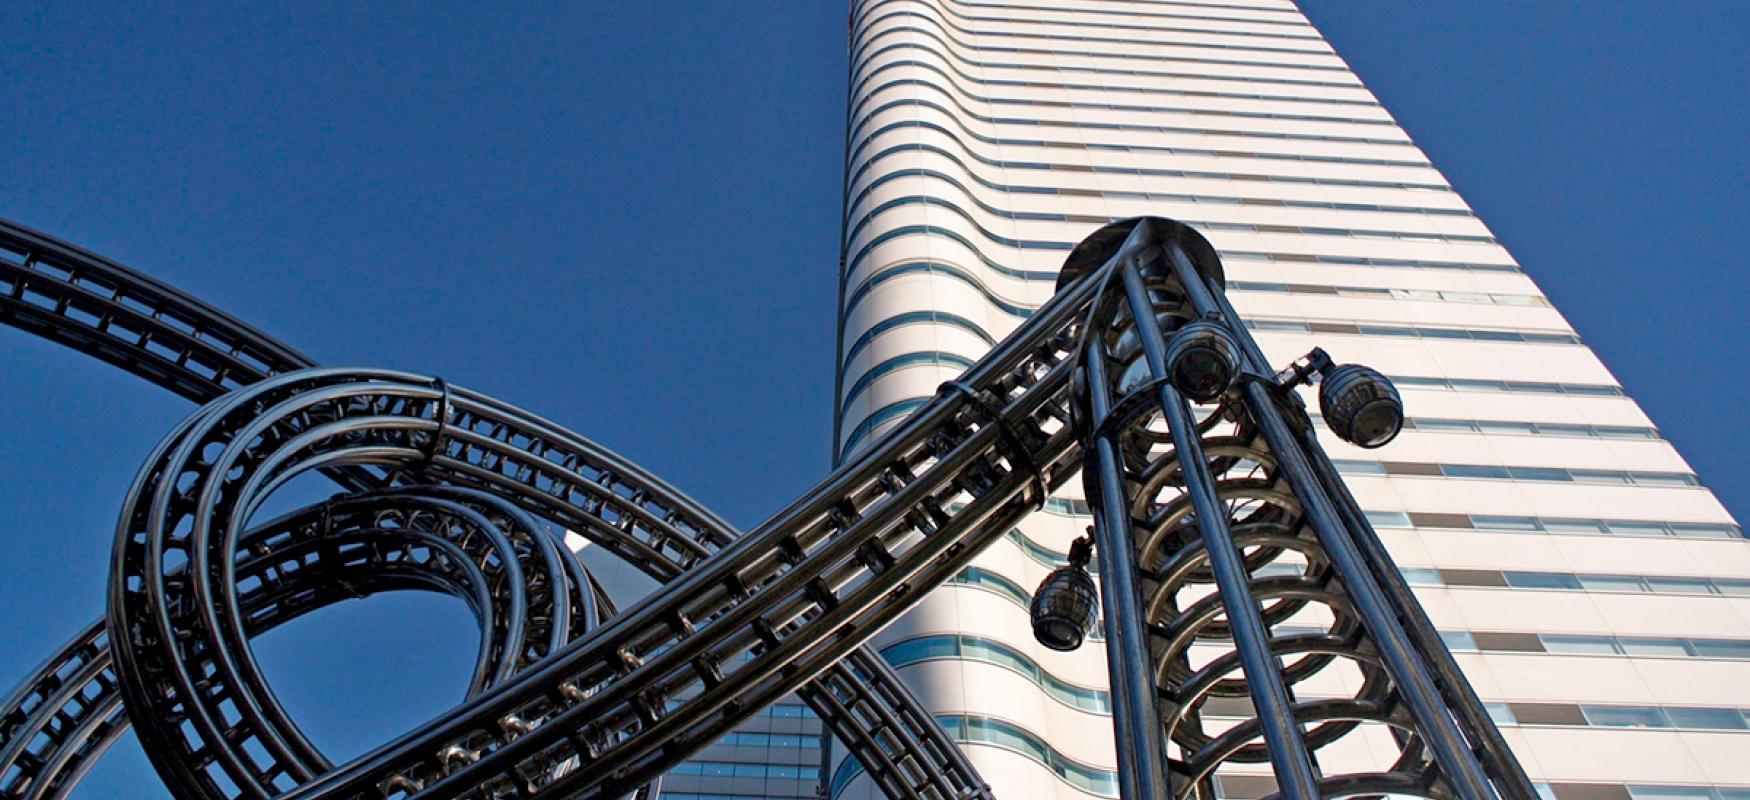 Part of a rollercoaster in front of an office building in Yokohama, Japan.